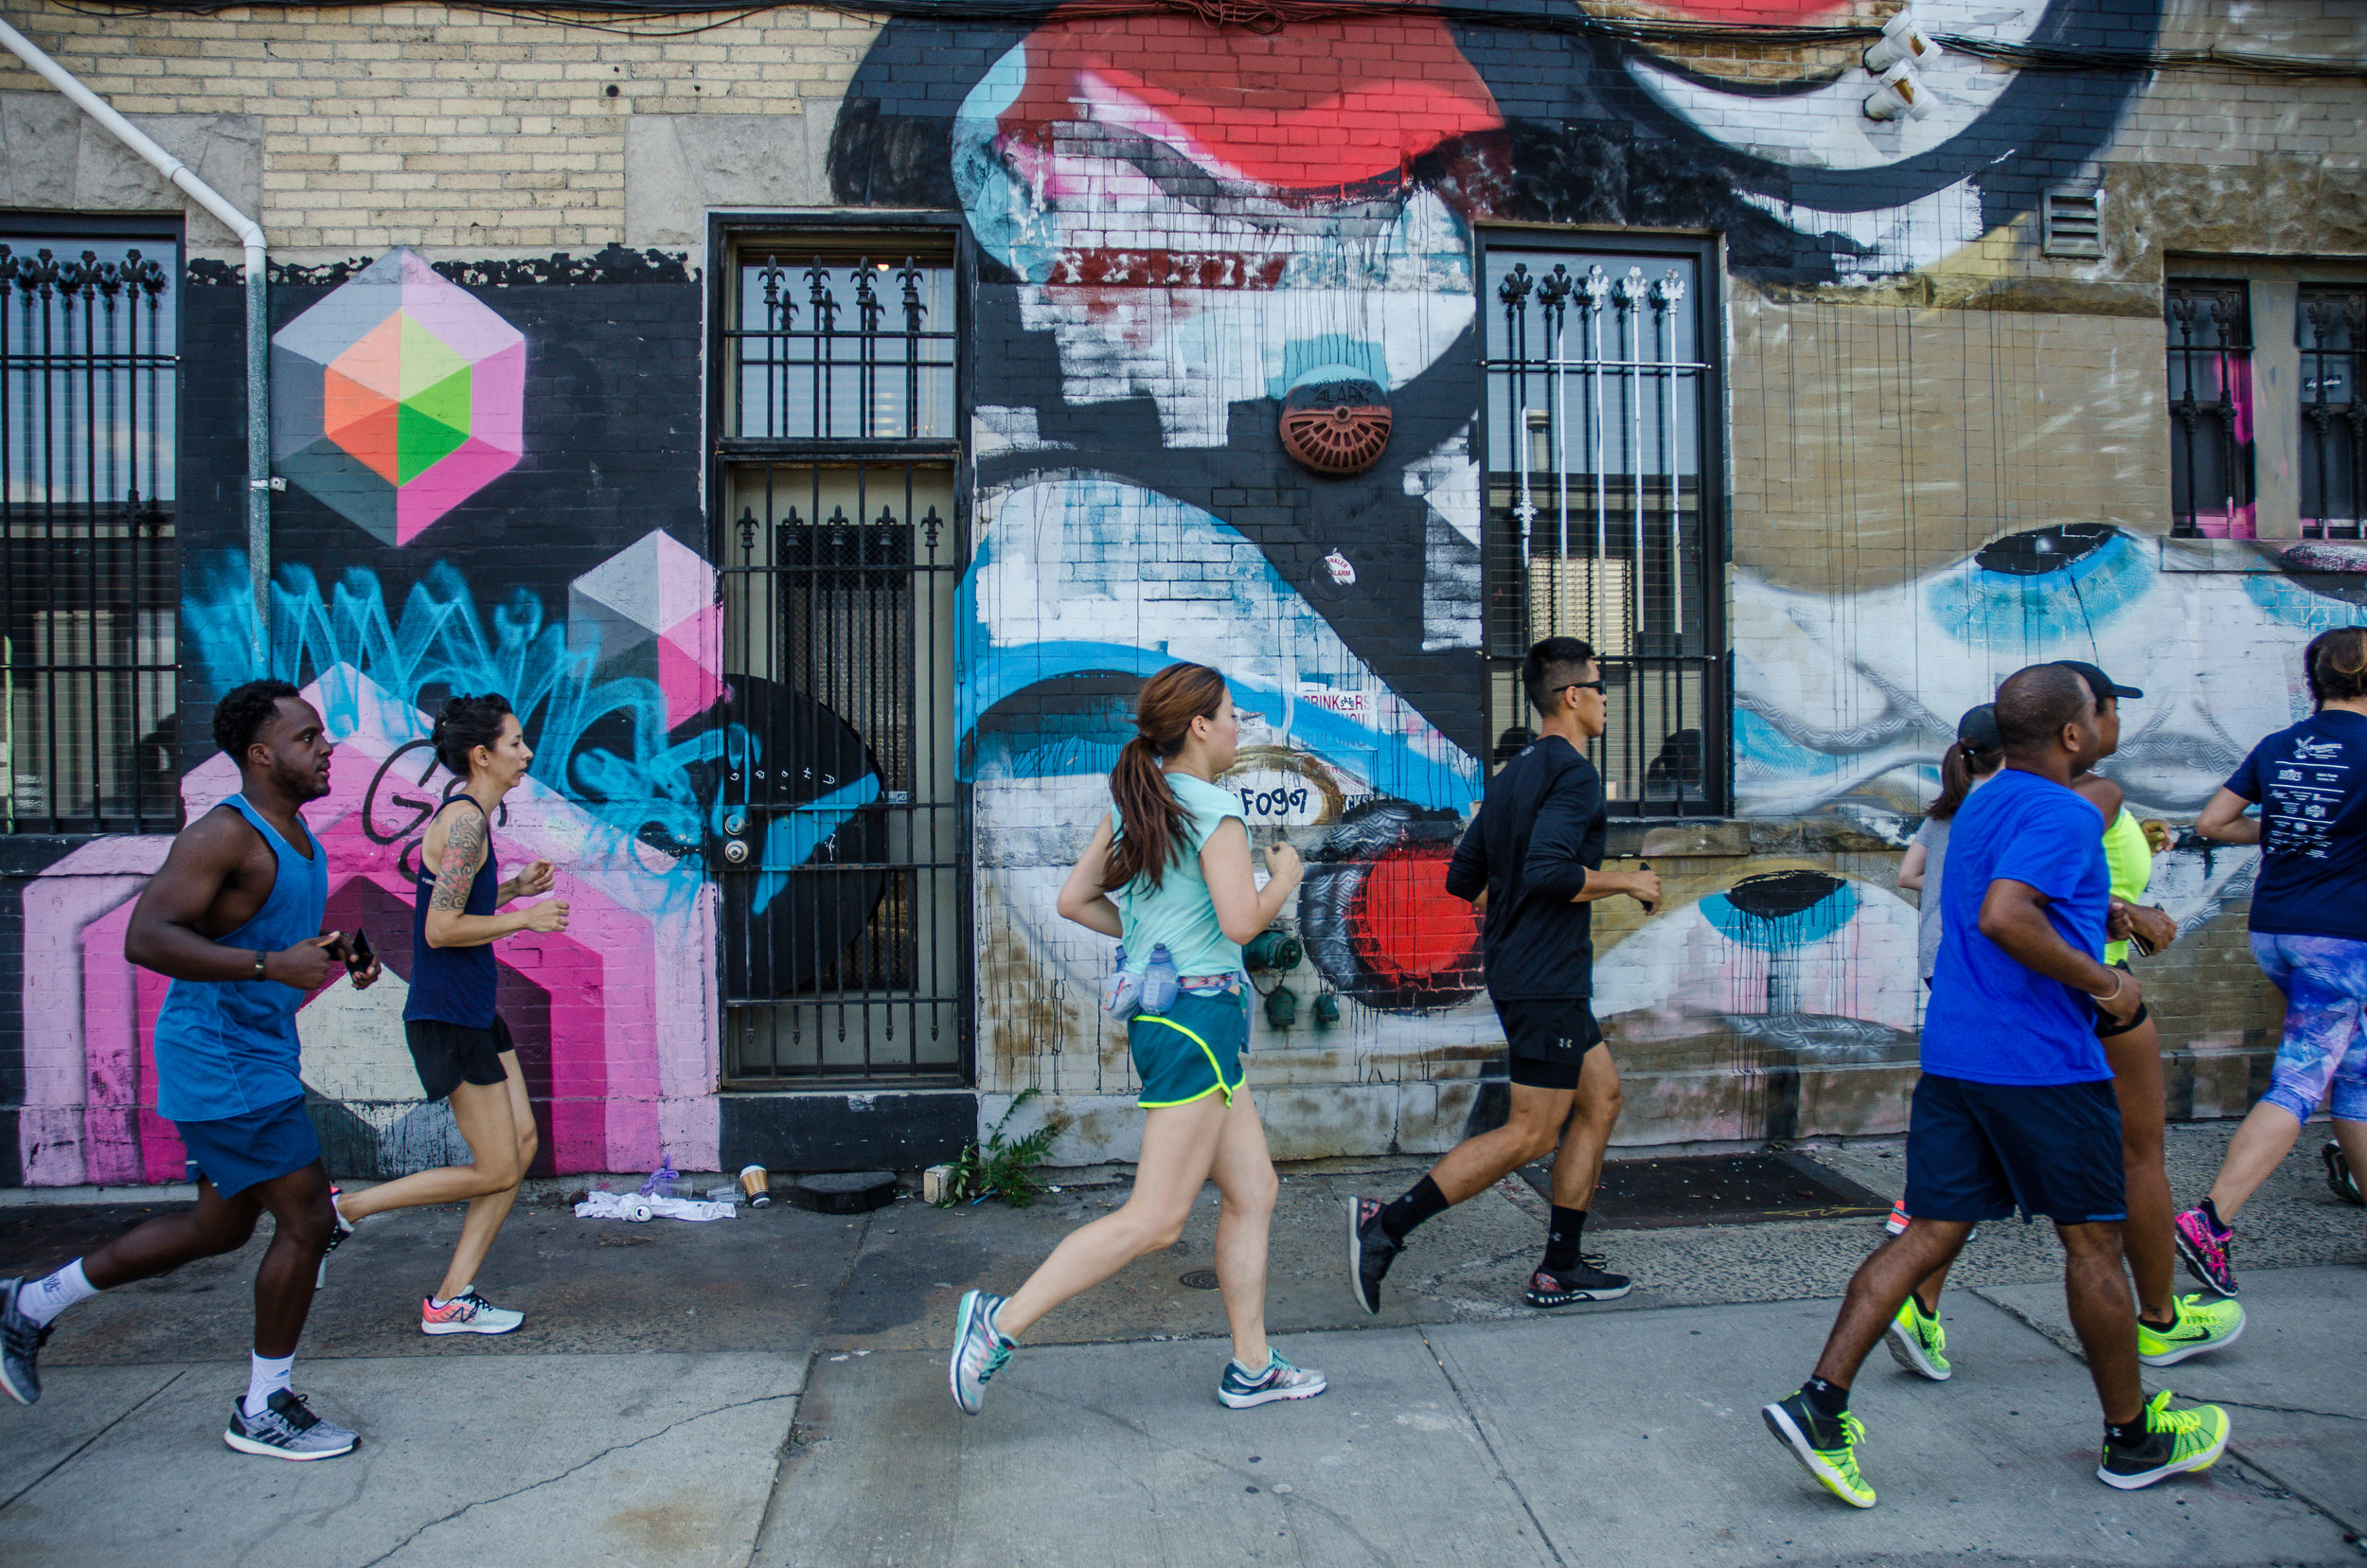 Les at Bushwick Art Run. Mural by Gumshoe Art. Photo by  Filles Garcons Photography .